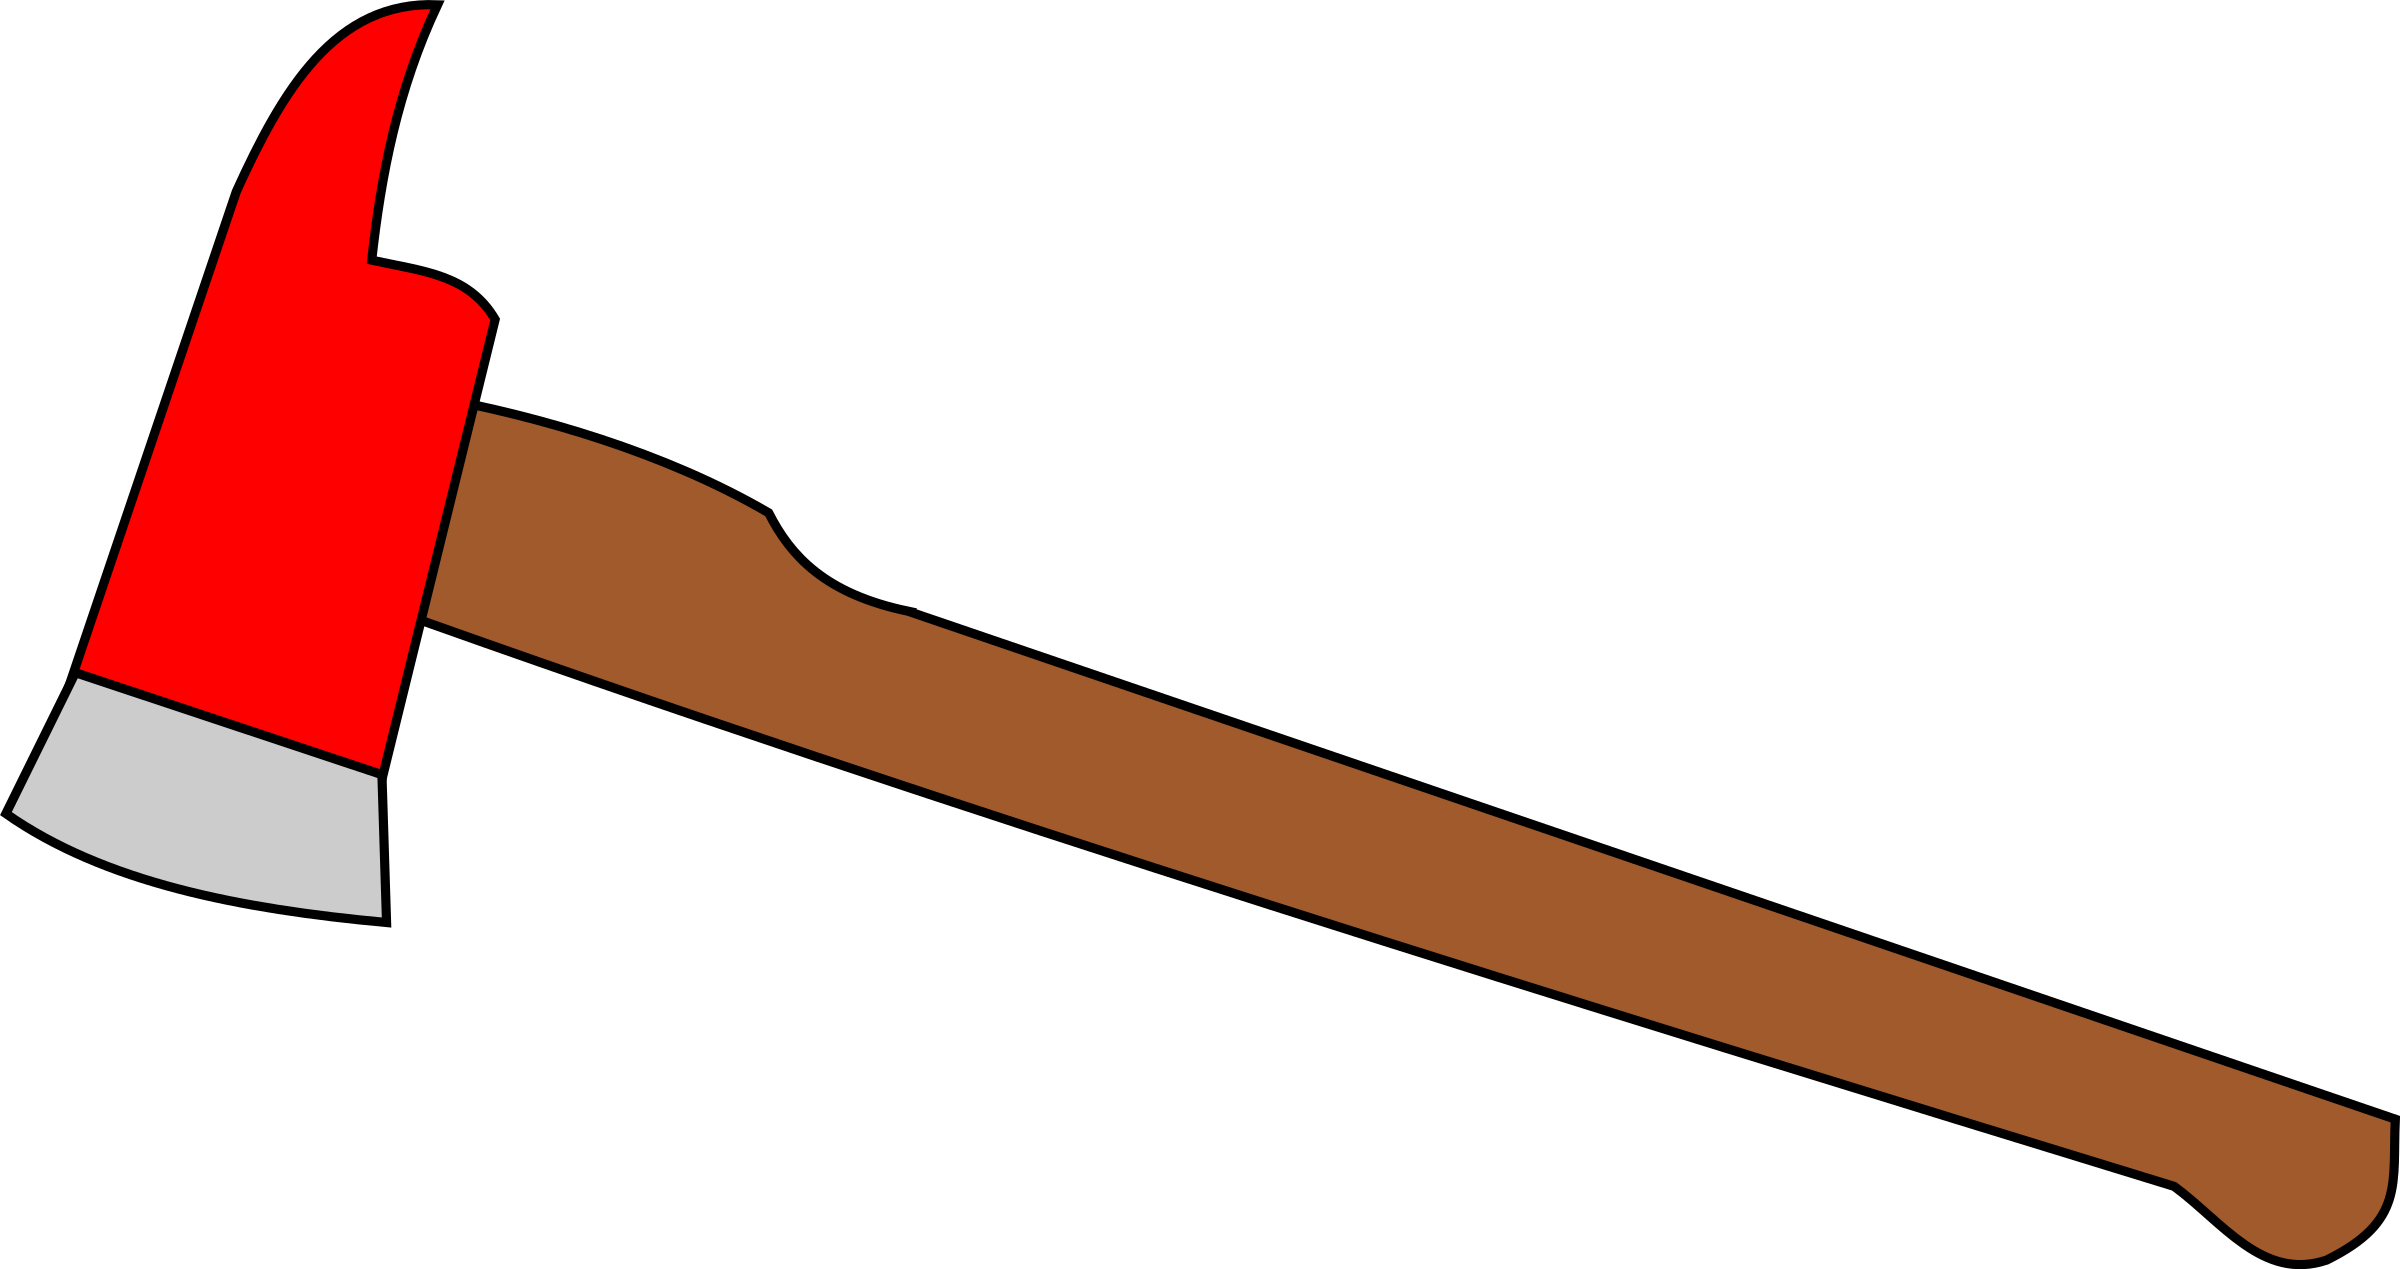 Pencil and in color. Clipart fire axe